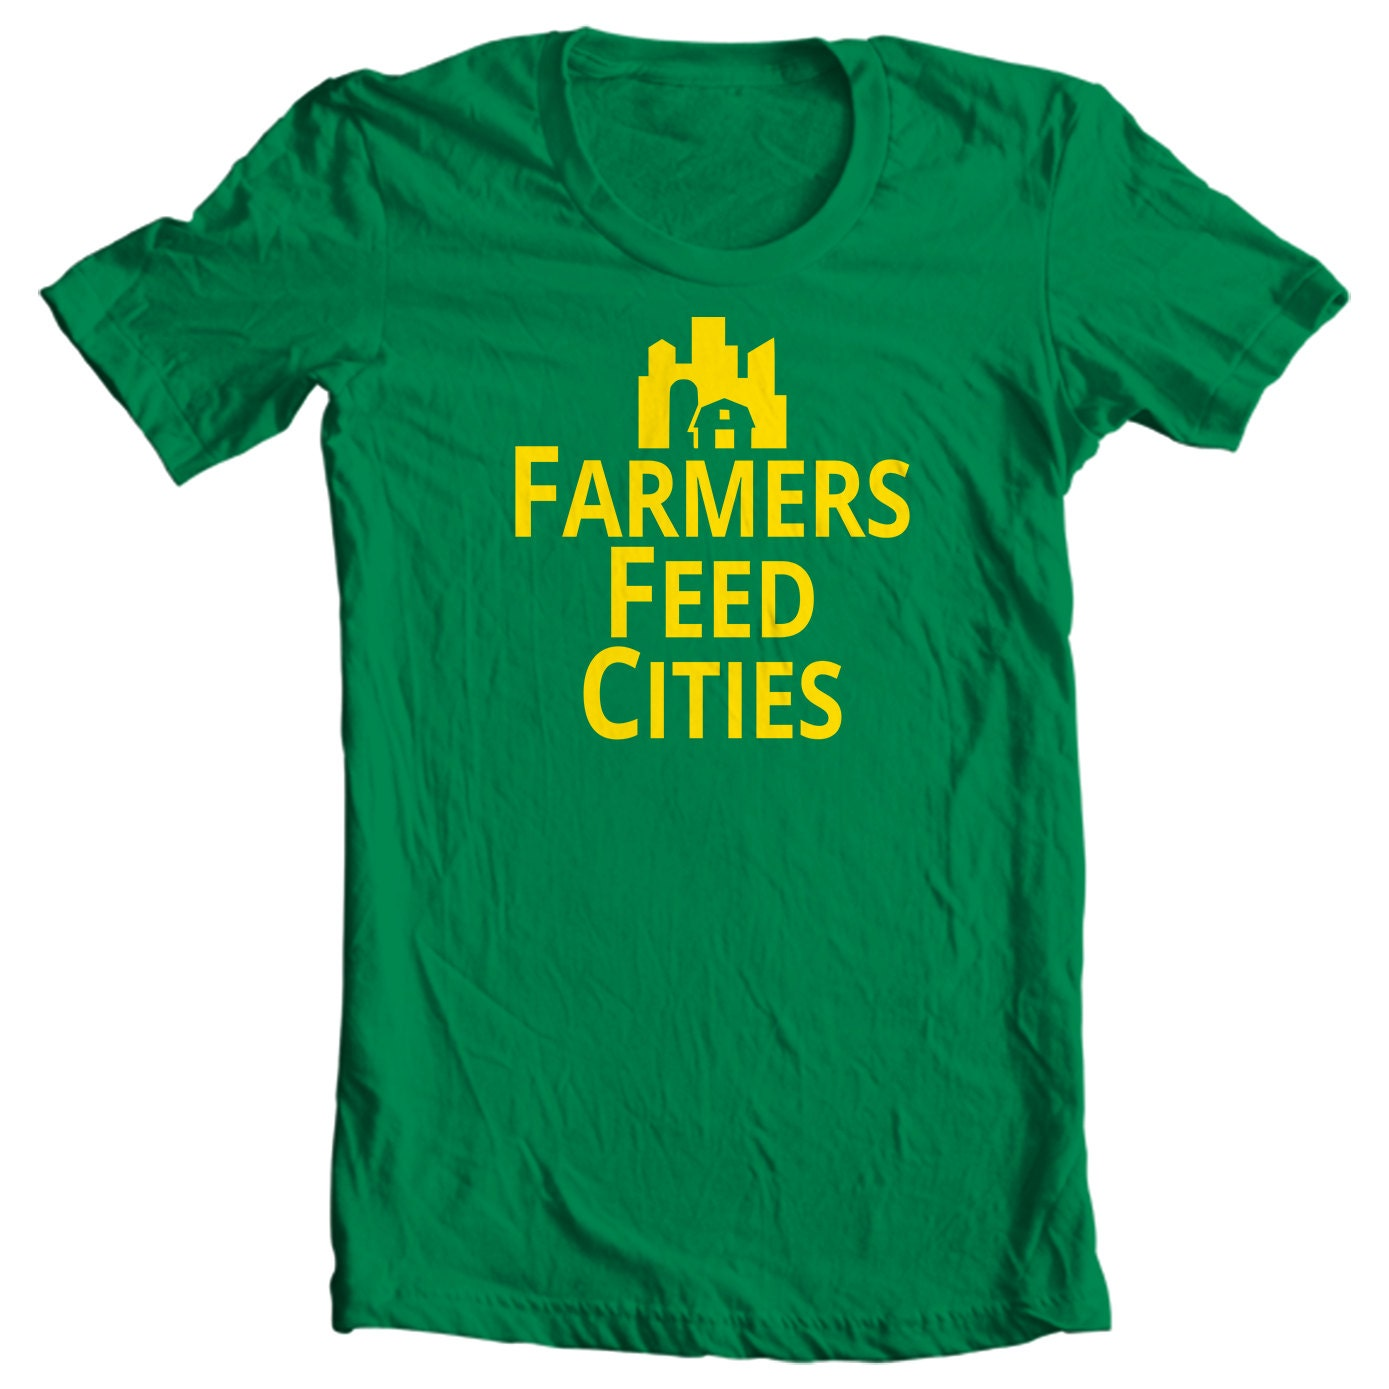 Farmers Feed Cities - Country Living T-shirt